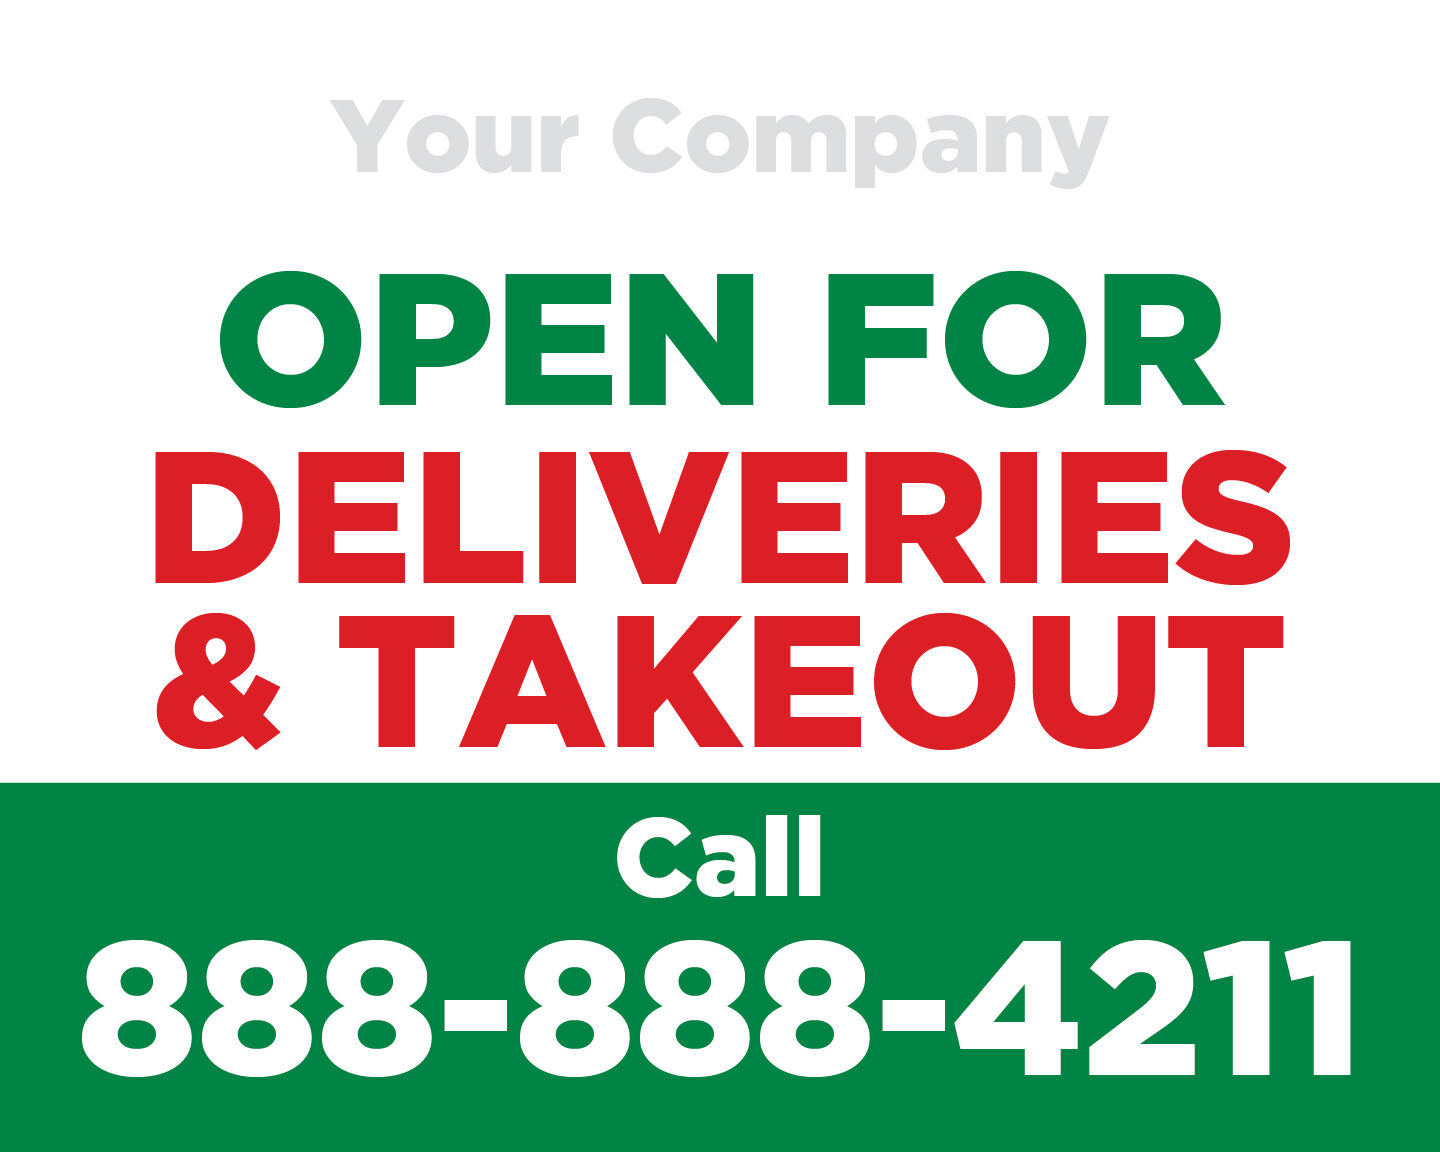 Open for Deliveries Window Clings